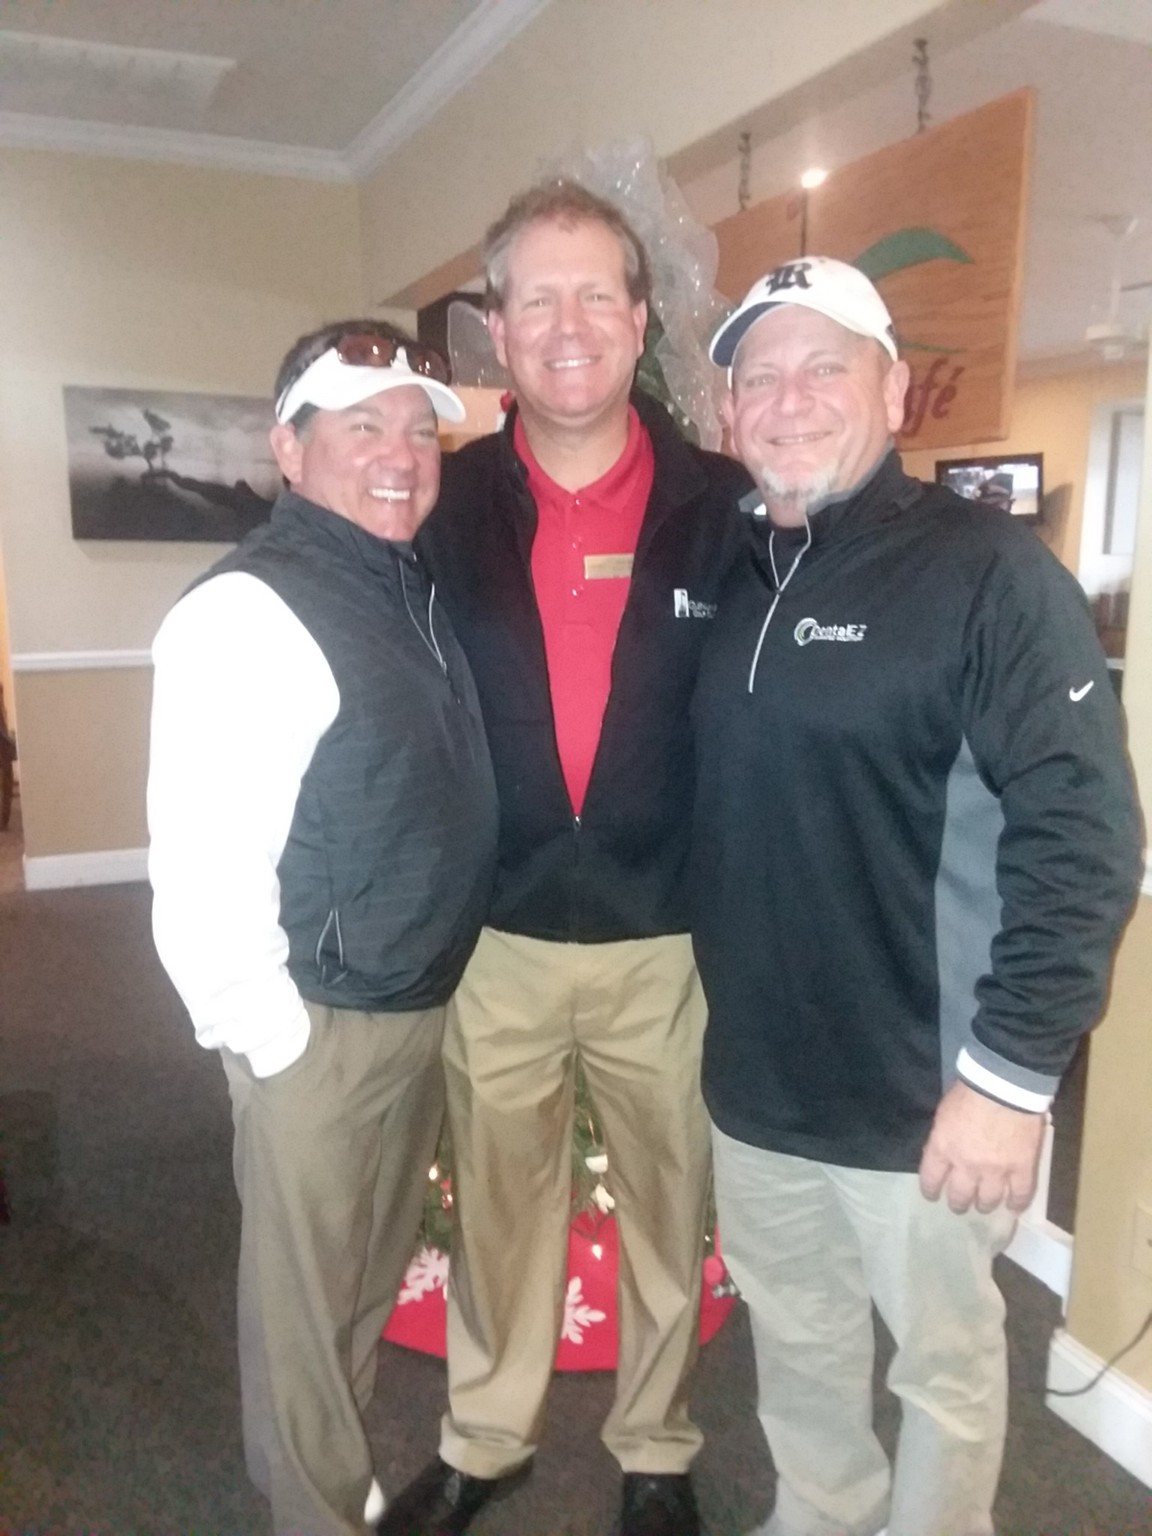 Pictured from left: Randy Burgan, Southern Fairways Radio Host, with David Musial, PGA General Manager, and Danny Spybey, Winter Open winner.